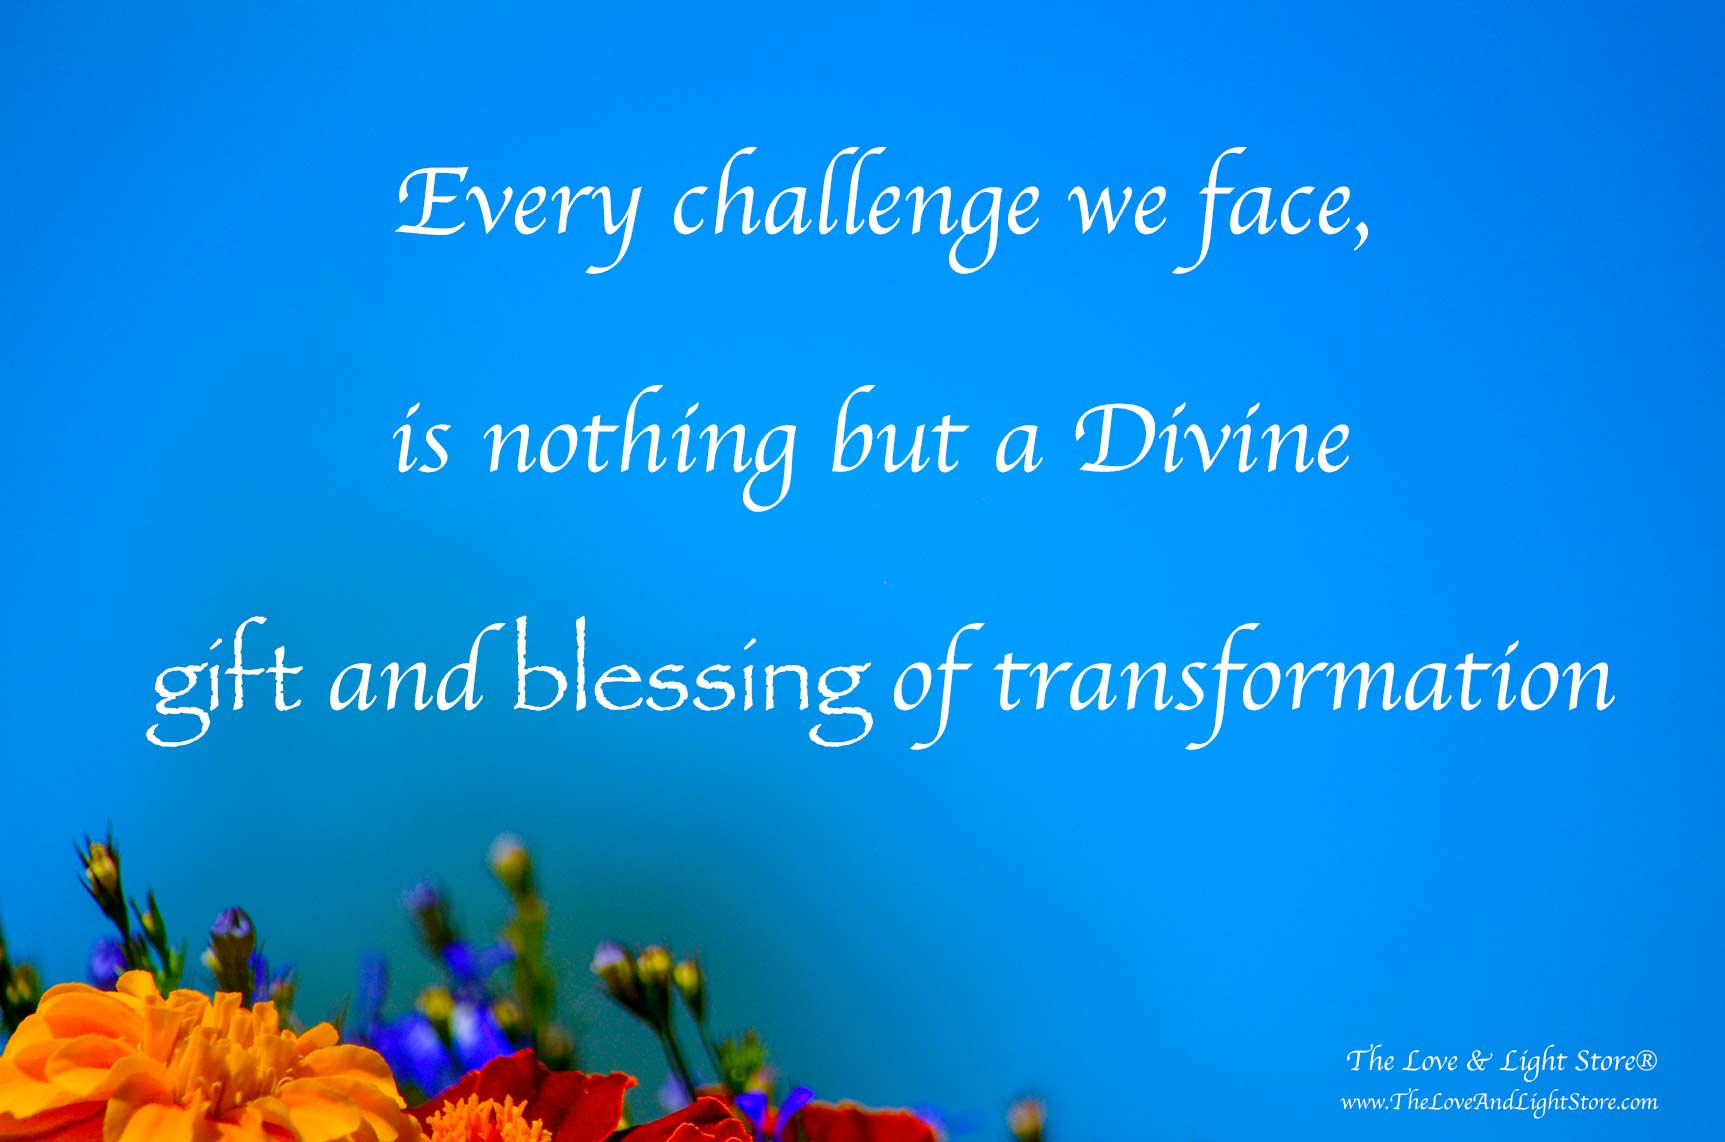 Every challenge we face is a Divine lesson, a gift of transformation